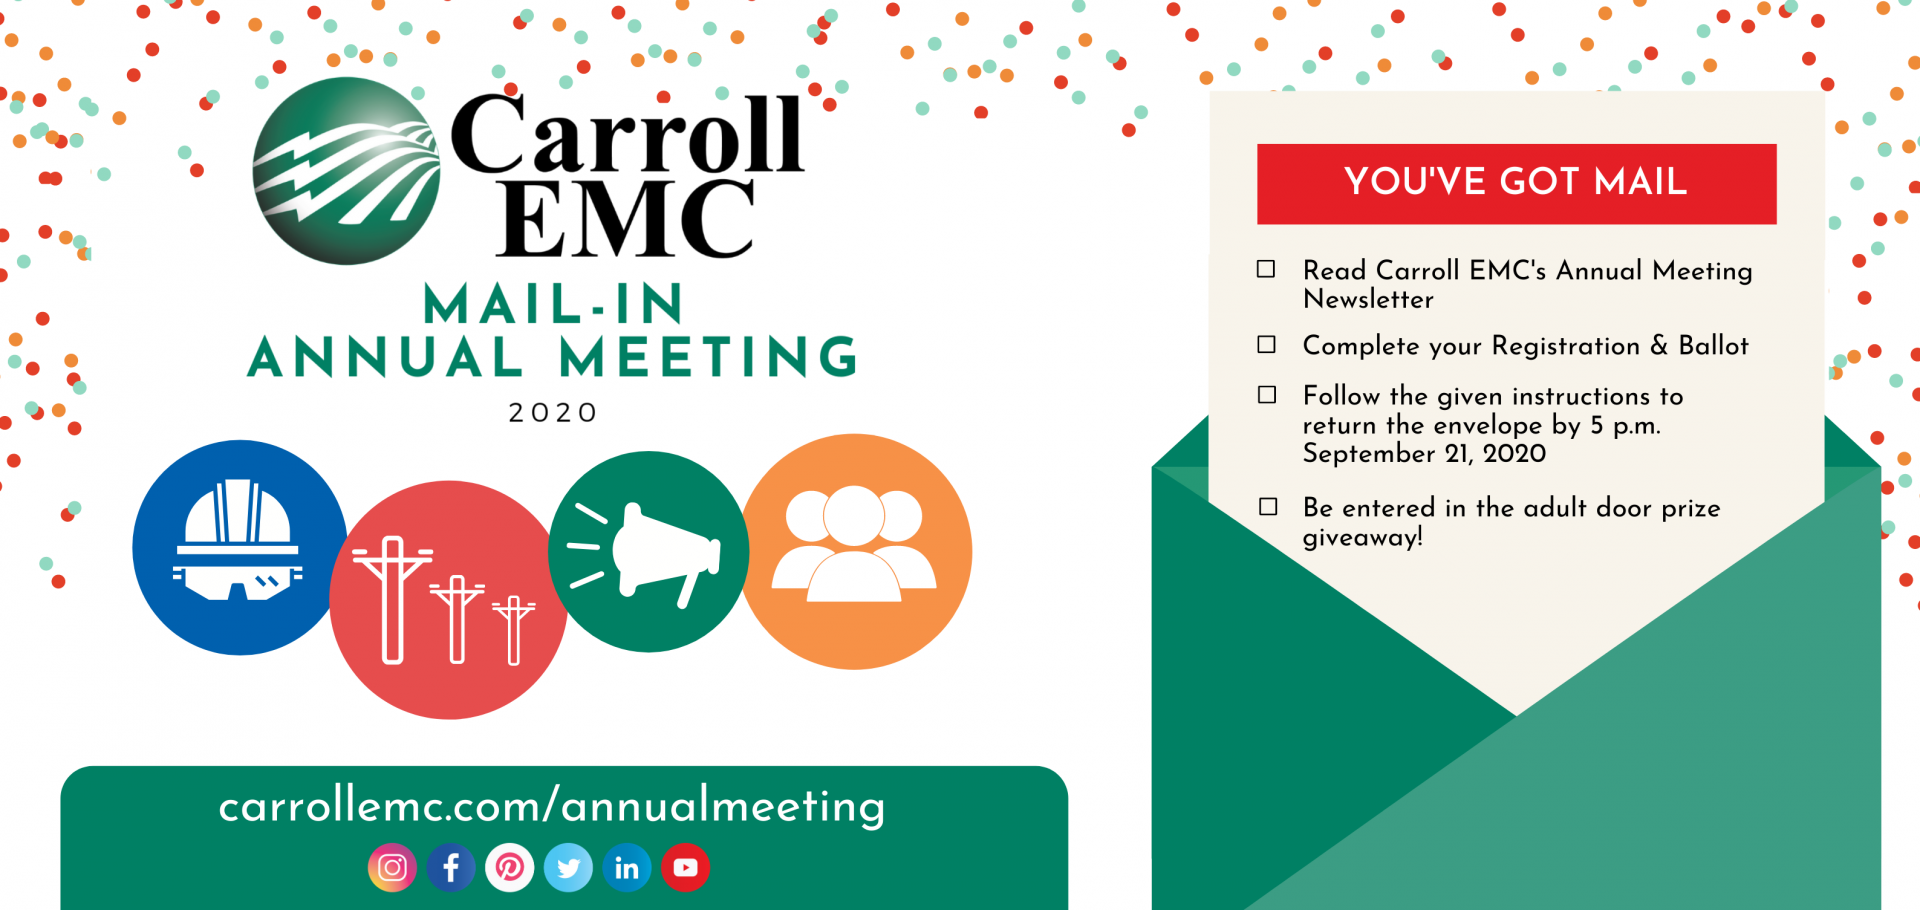 2020 Annual Meeting